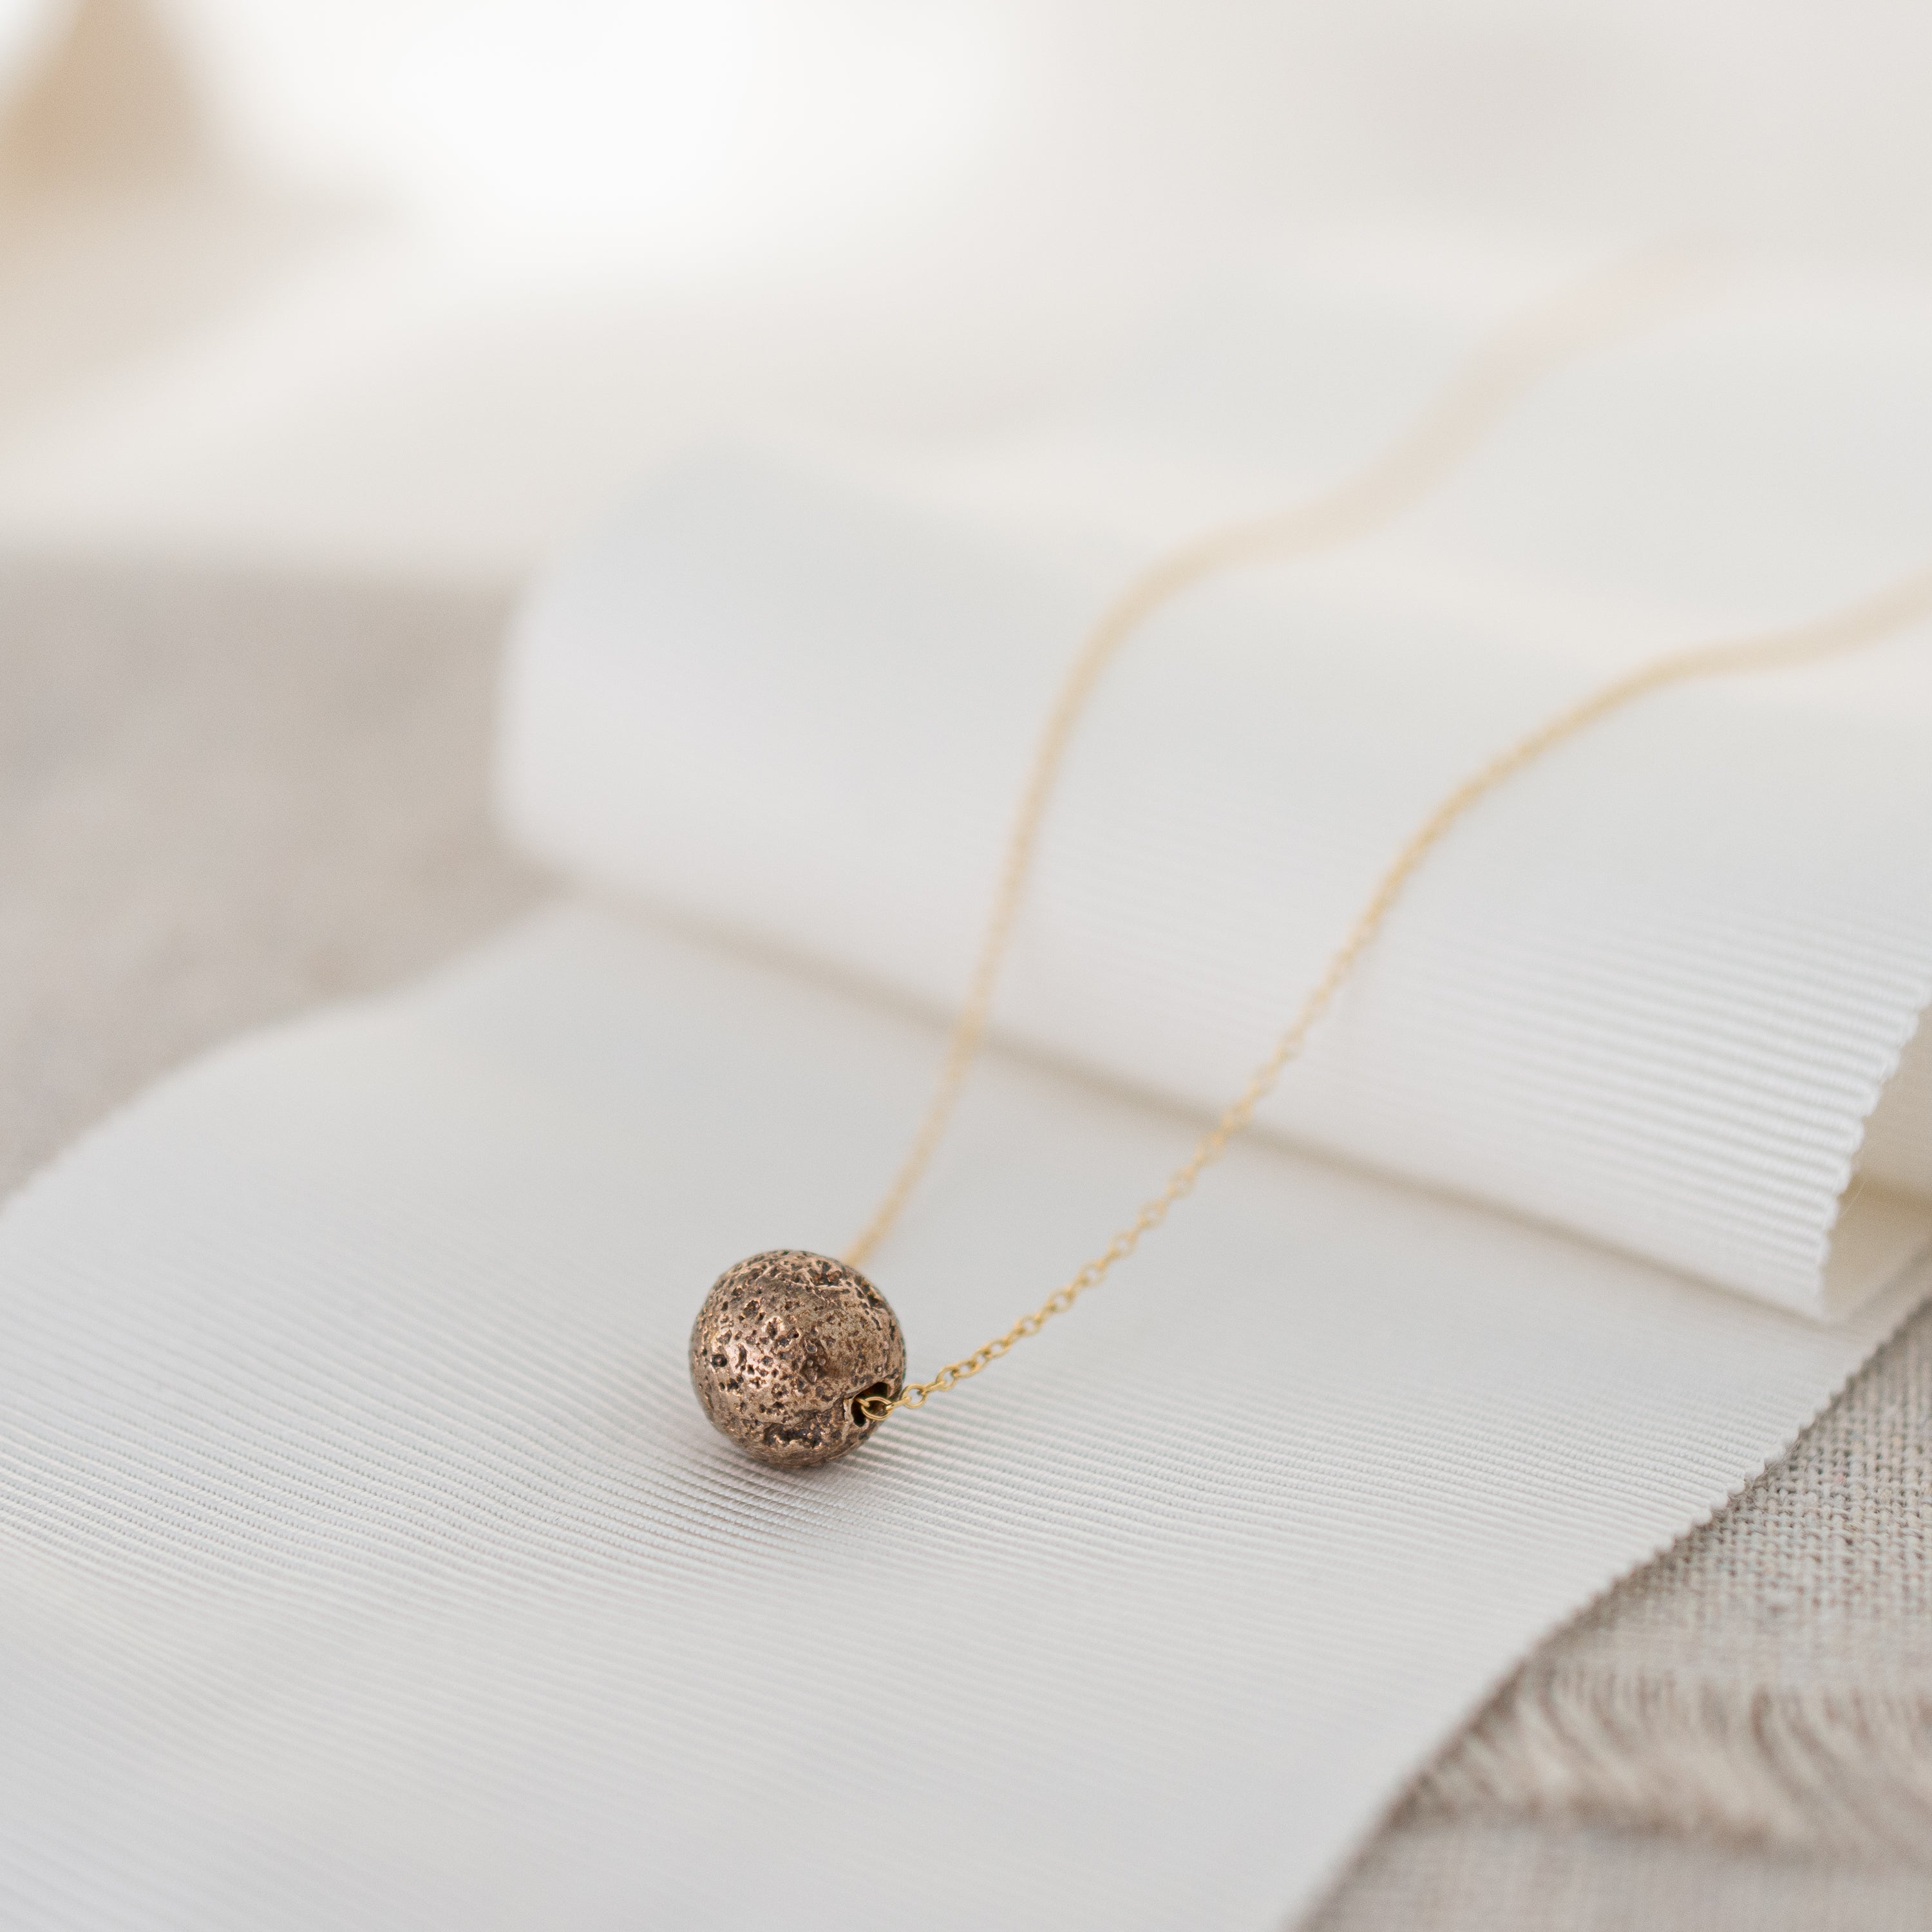 'Courage' Sterling Lava Bead Necklace | Sterling Silver and 14k Gold-filled